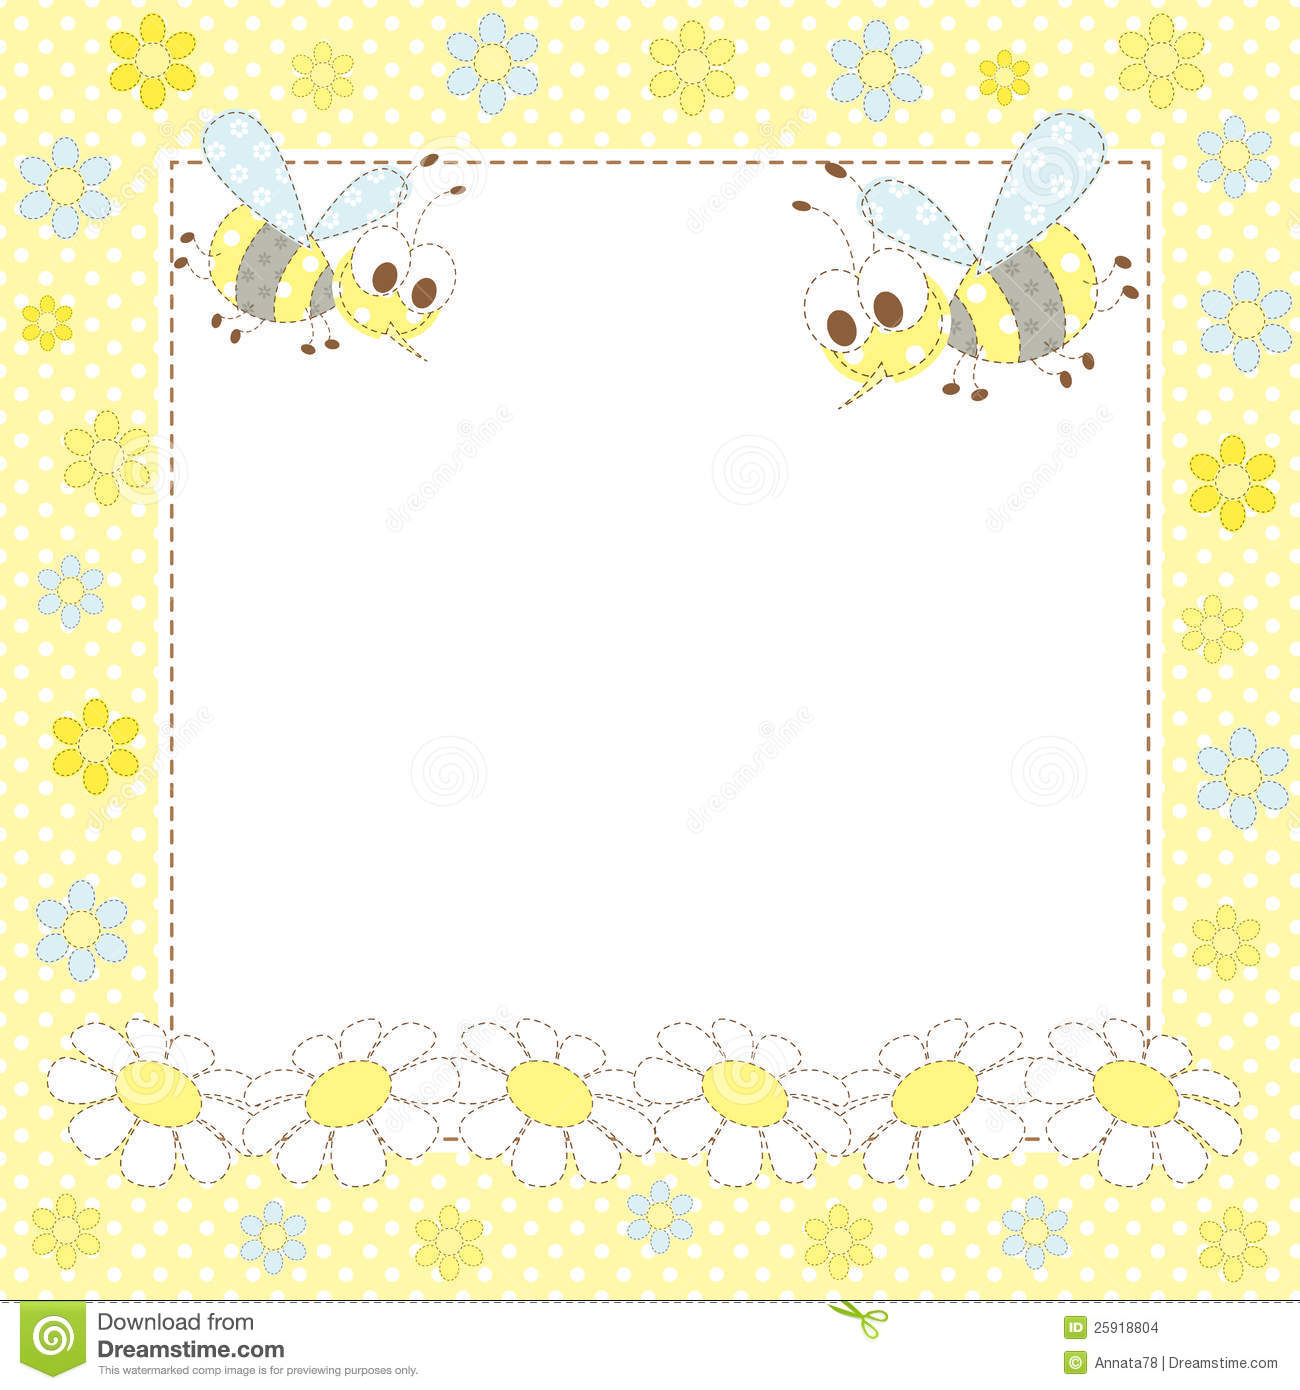 Baby Frame With Bees And Flowers Stock Images - Image: 25918804